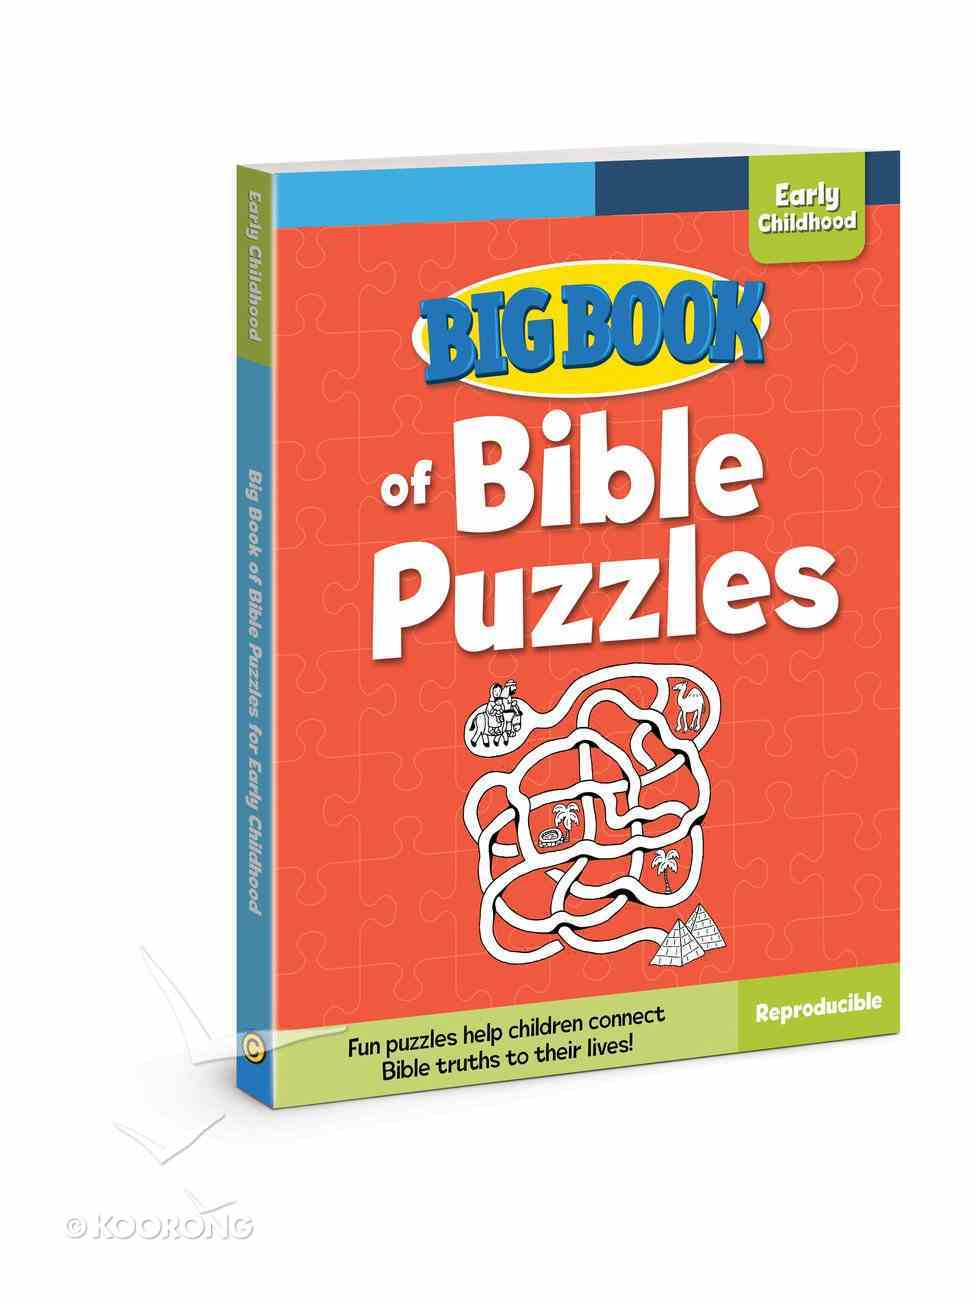 Big Book of Bible Puzzles For Early Childhood (Reproducible) Paperback